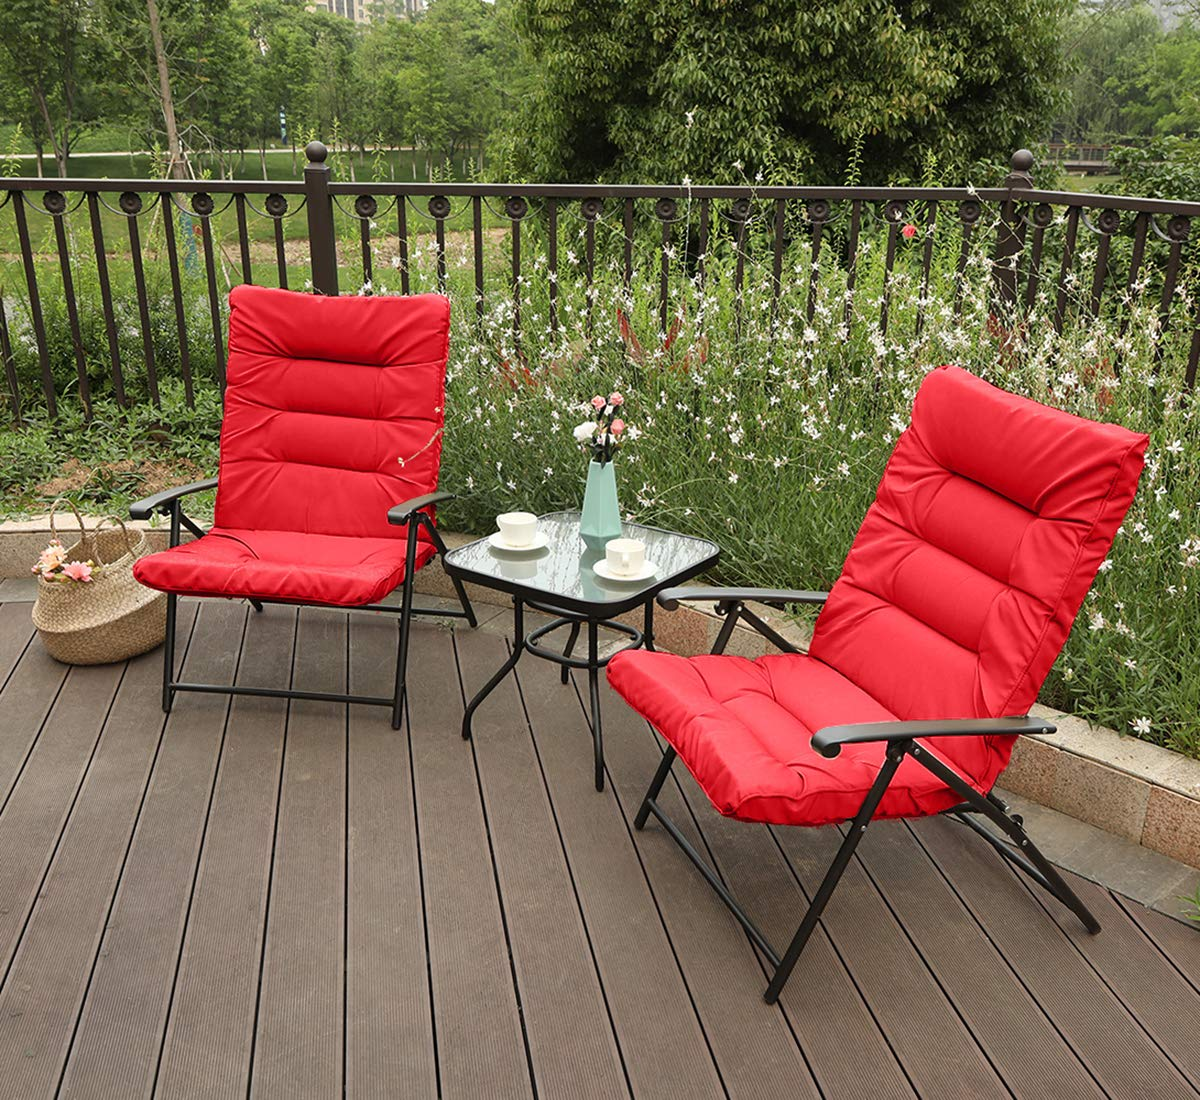 PHI VILLA 3 PC Patio Adjustable Reclining Chair Set Cushioned Folding Chair Indoor Outdoor Furniture, Red